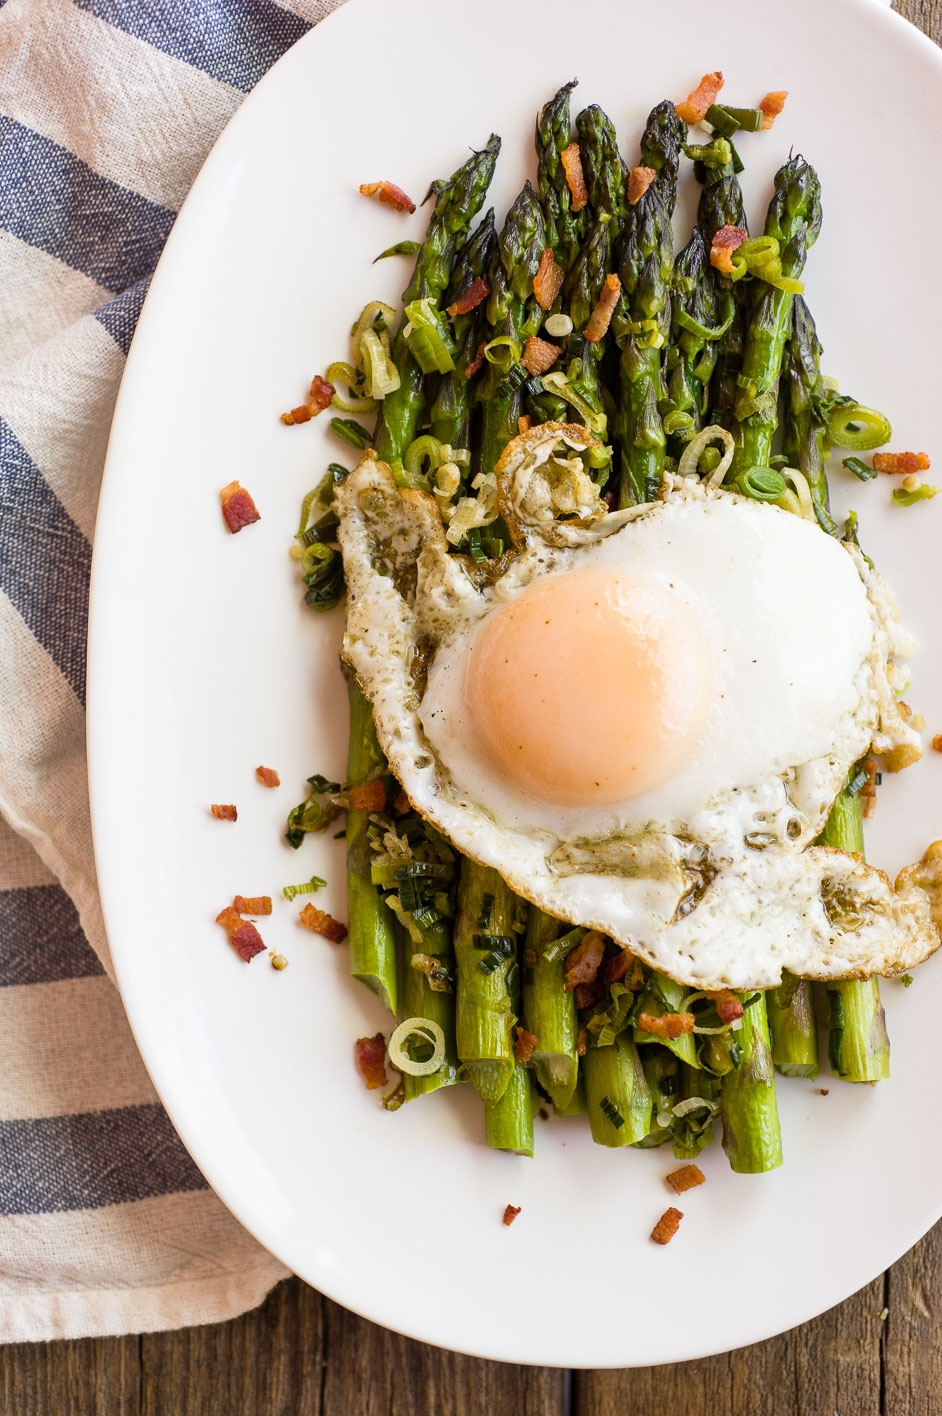 Asparagus, Garlic and Eggs @ Minimally Invasive